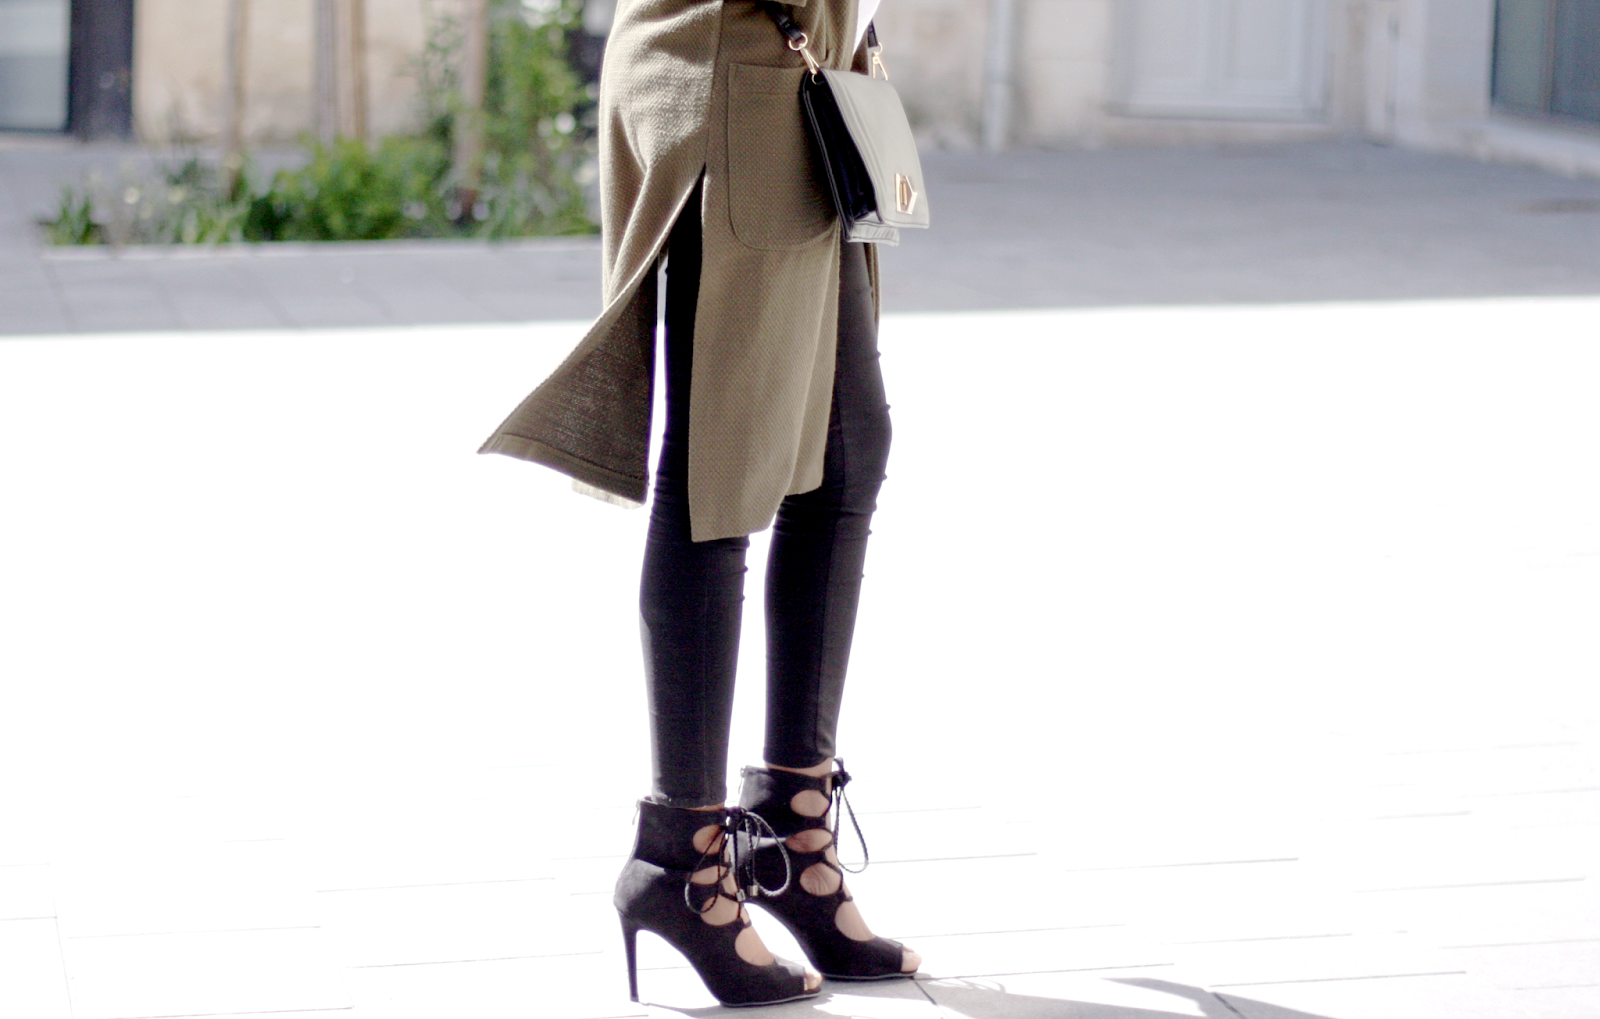 blog mode, blogueuse mode, blogueuse bordelaise, blogueuse bordelaise noire, pochette asos, veste river island, pantalon only noir, chaussures nelly, bordeaux, ootd, olivia, tenue du jour, olivia blog mode, the daily women, chaussures nelly